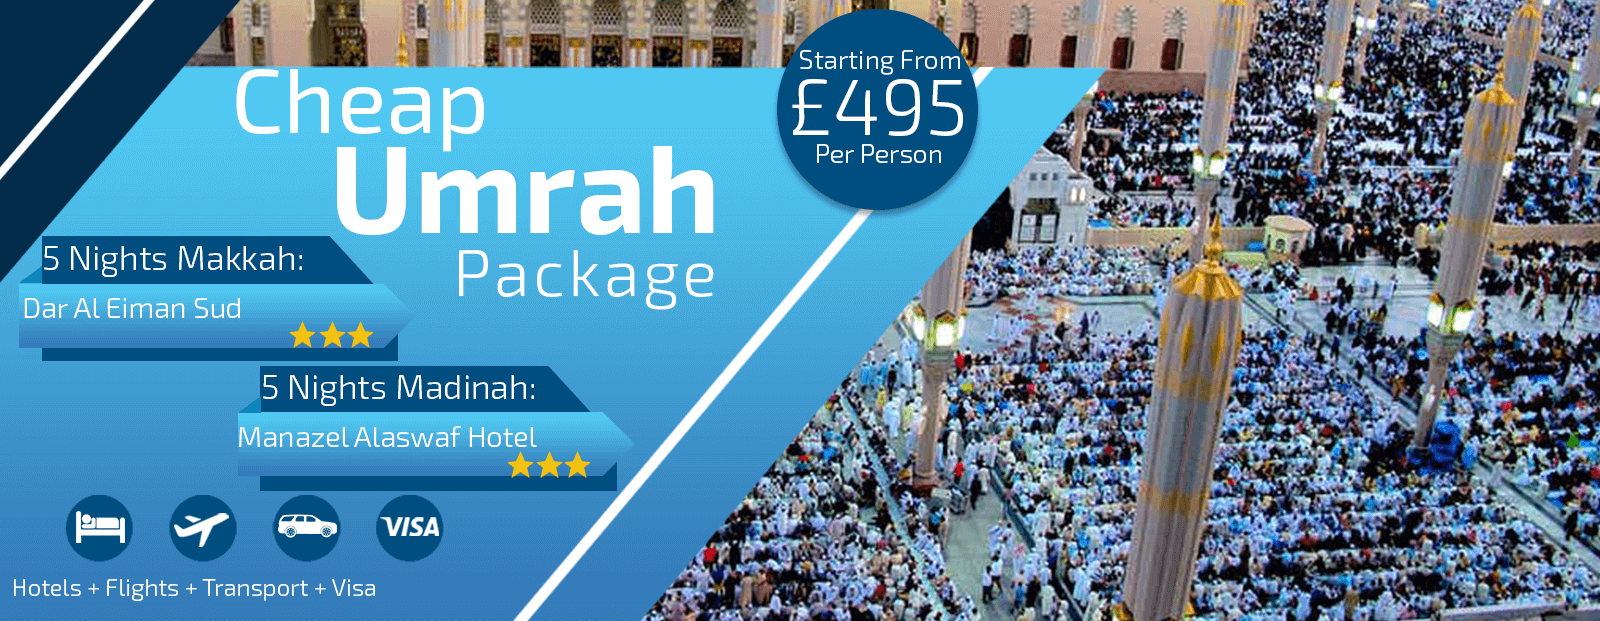 Umrah Banner: 21 Day Cheap Umrah Packages